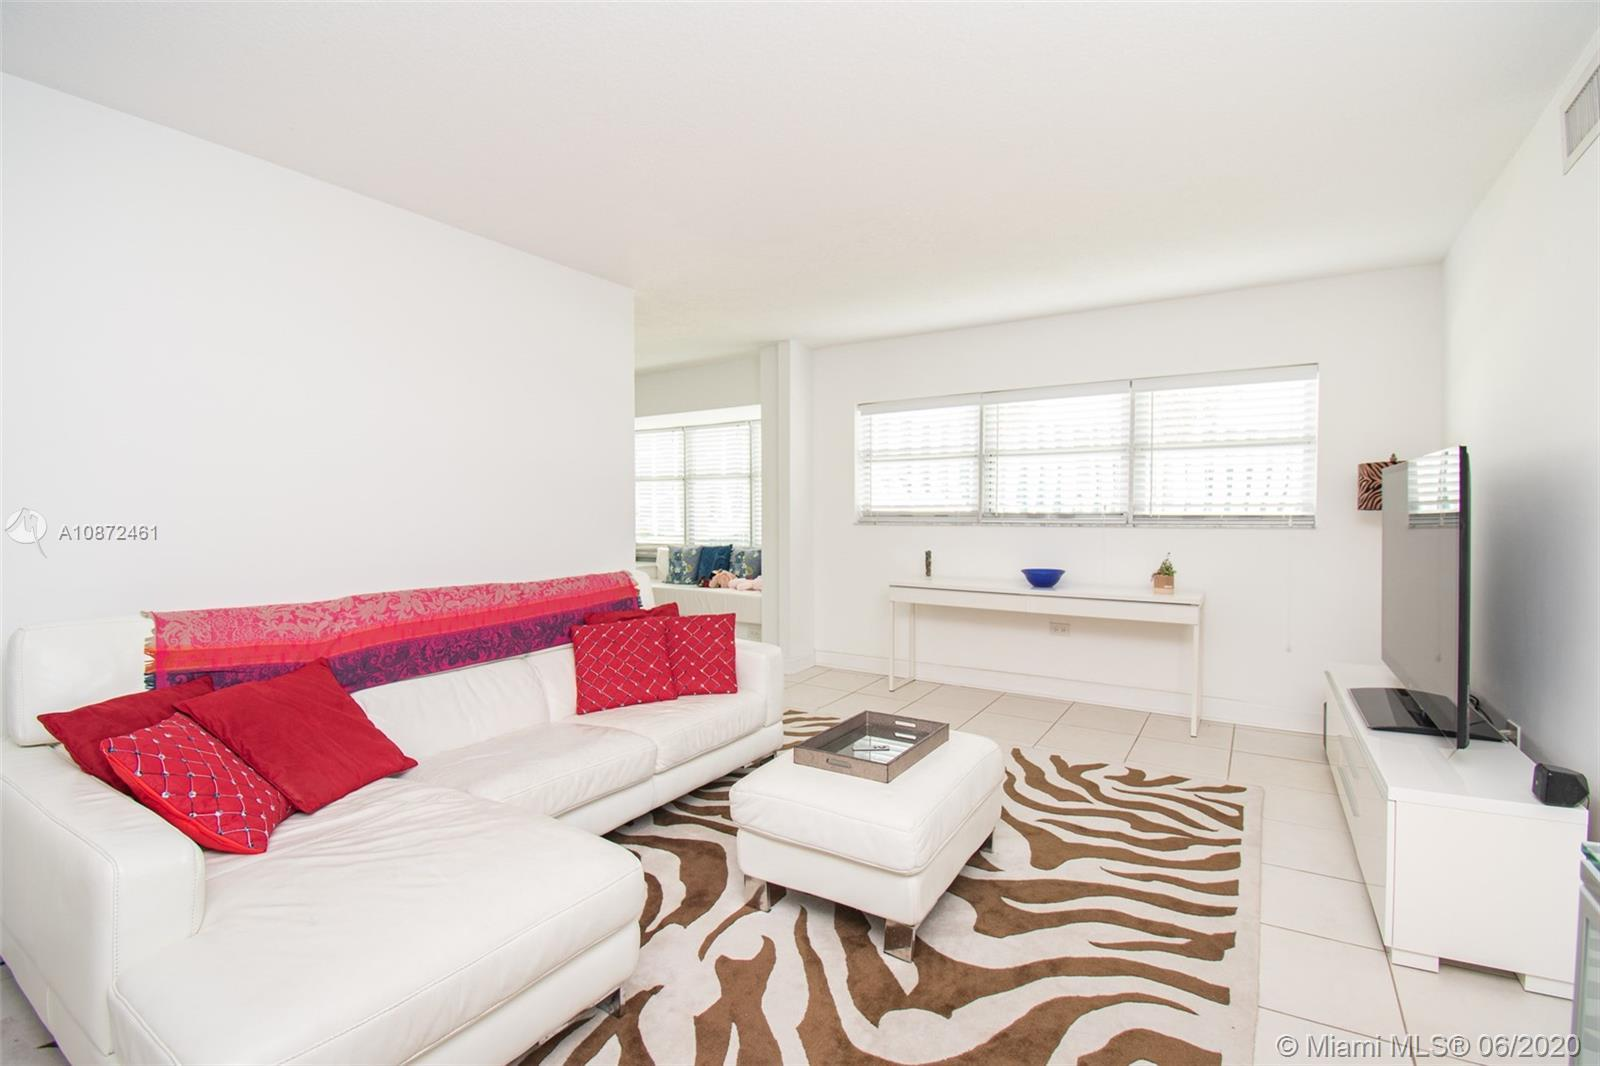 Chic and modern 2-bedroom/2-bath condo located in prime South Beach neighborhood that's steps away f